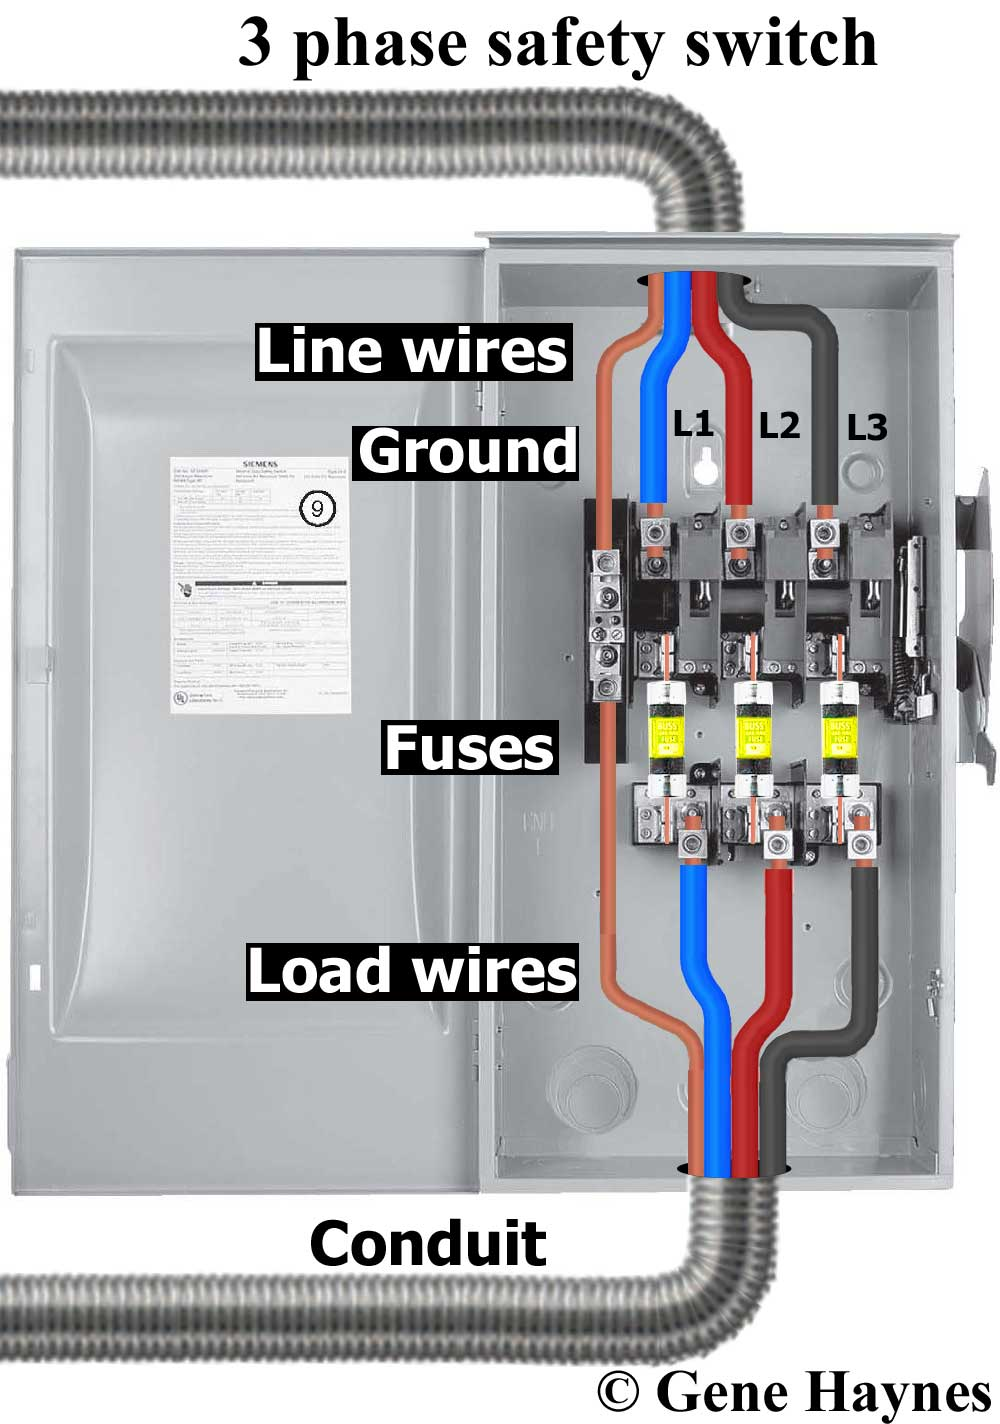 Larger image, 3-pole safety switch. Example shows fusable/ this is called a  4-wire, but only 3 wires are disconnected by safety switch